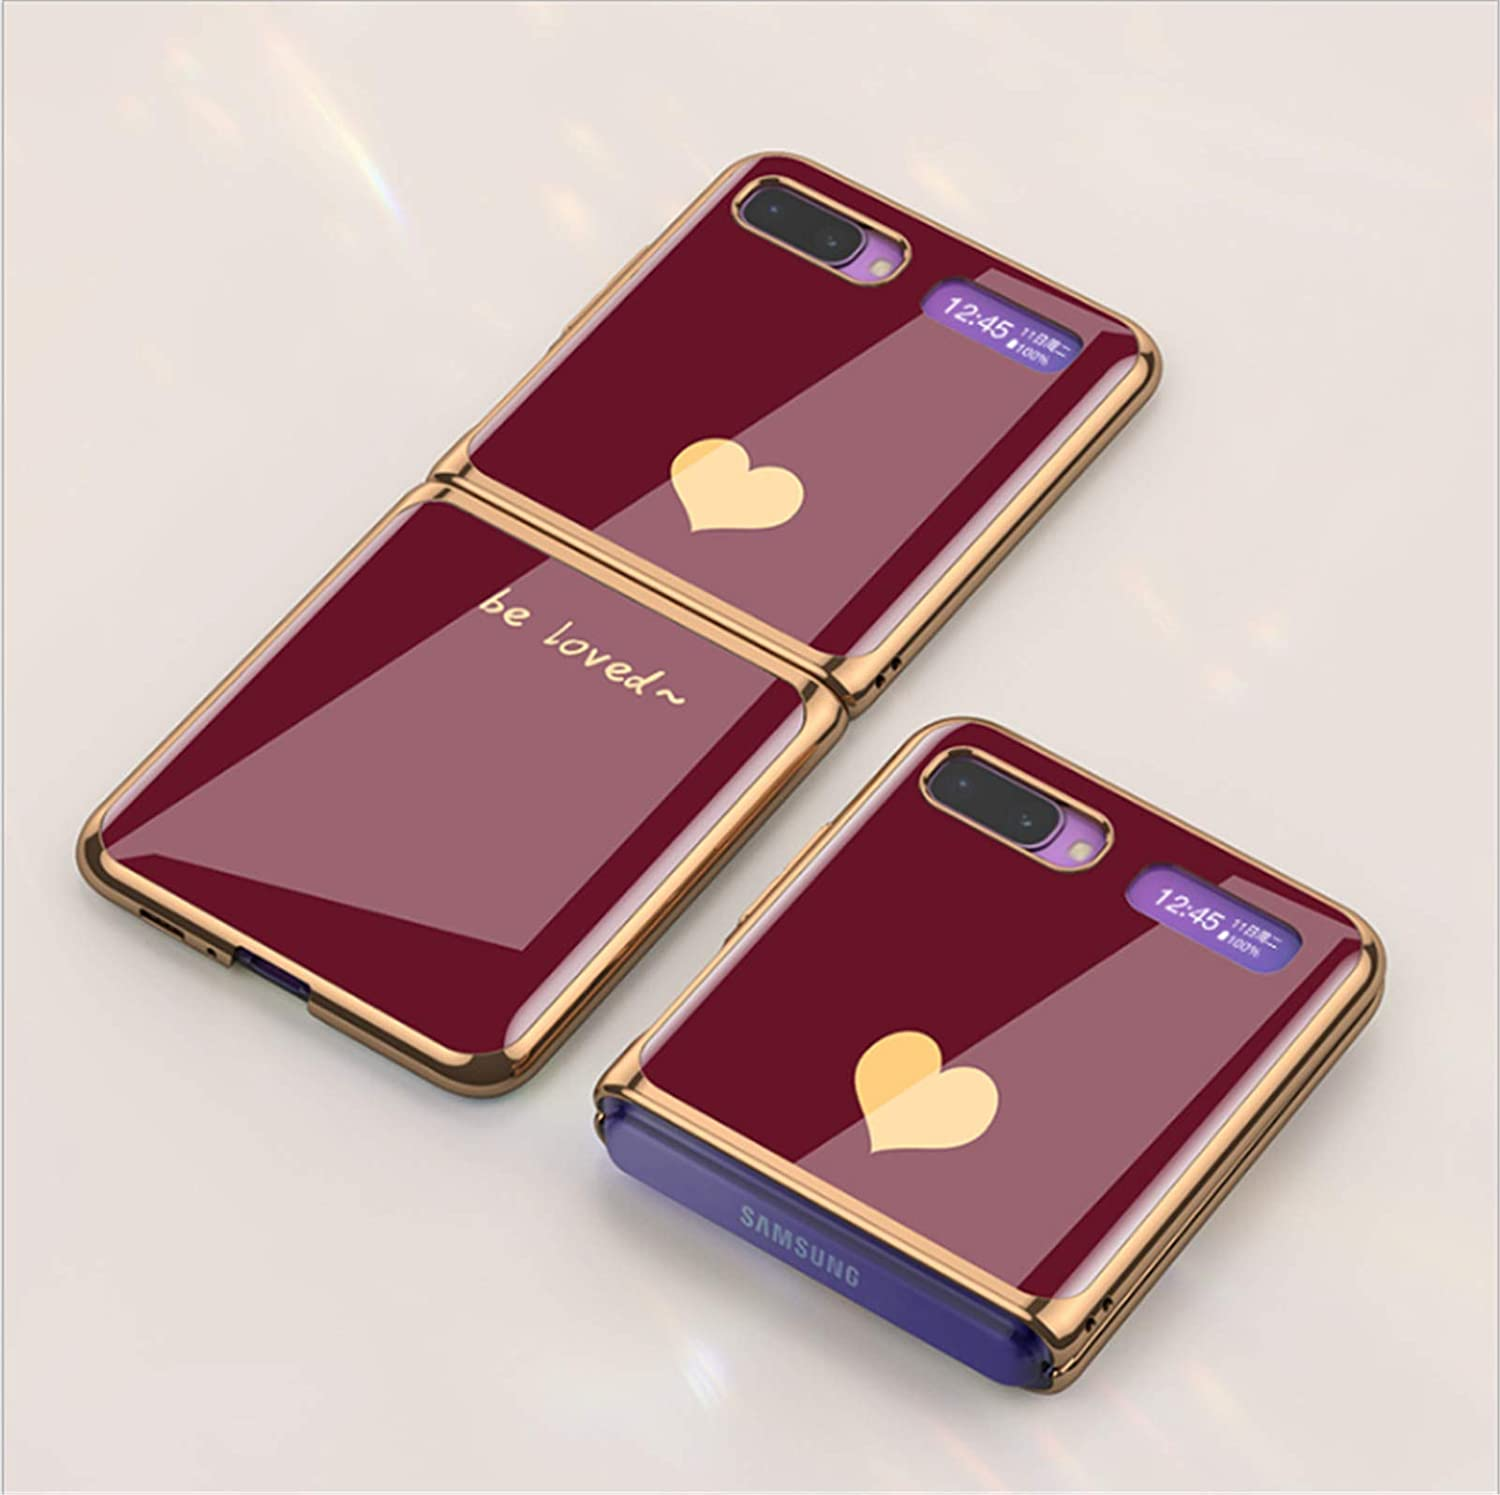 Luxury Tempered Glass Phone Case Protective Skin for Samsung Galaxy Z Flip 5G 2020 Fashion Electroplated PC Back Cover (Wine Red)…